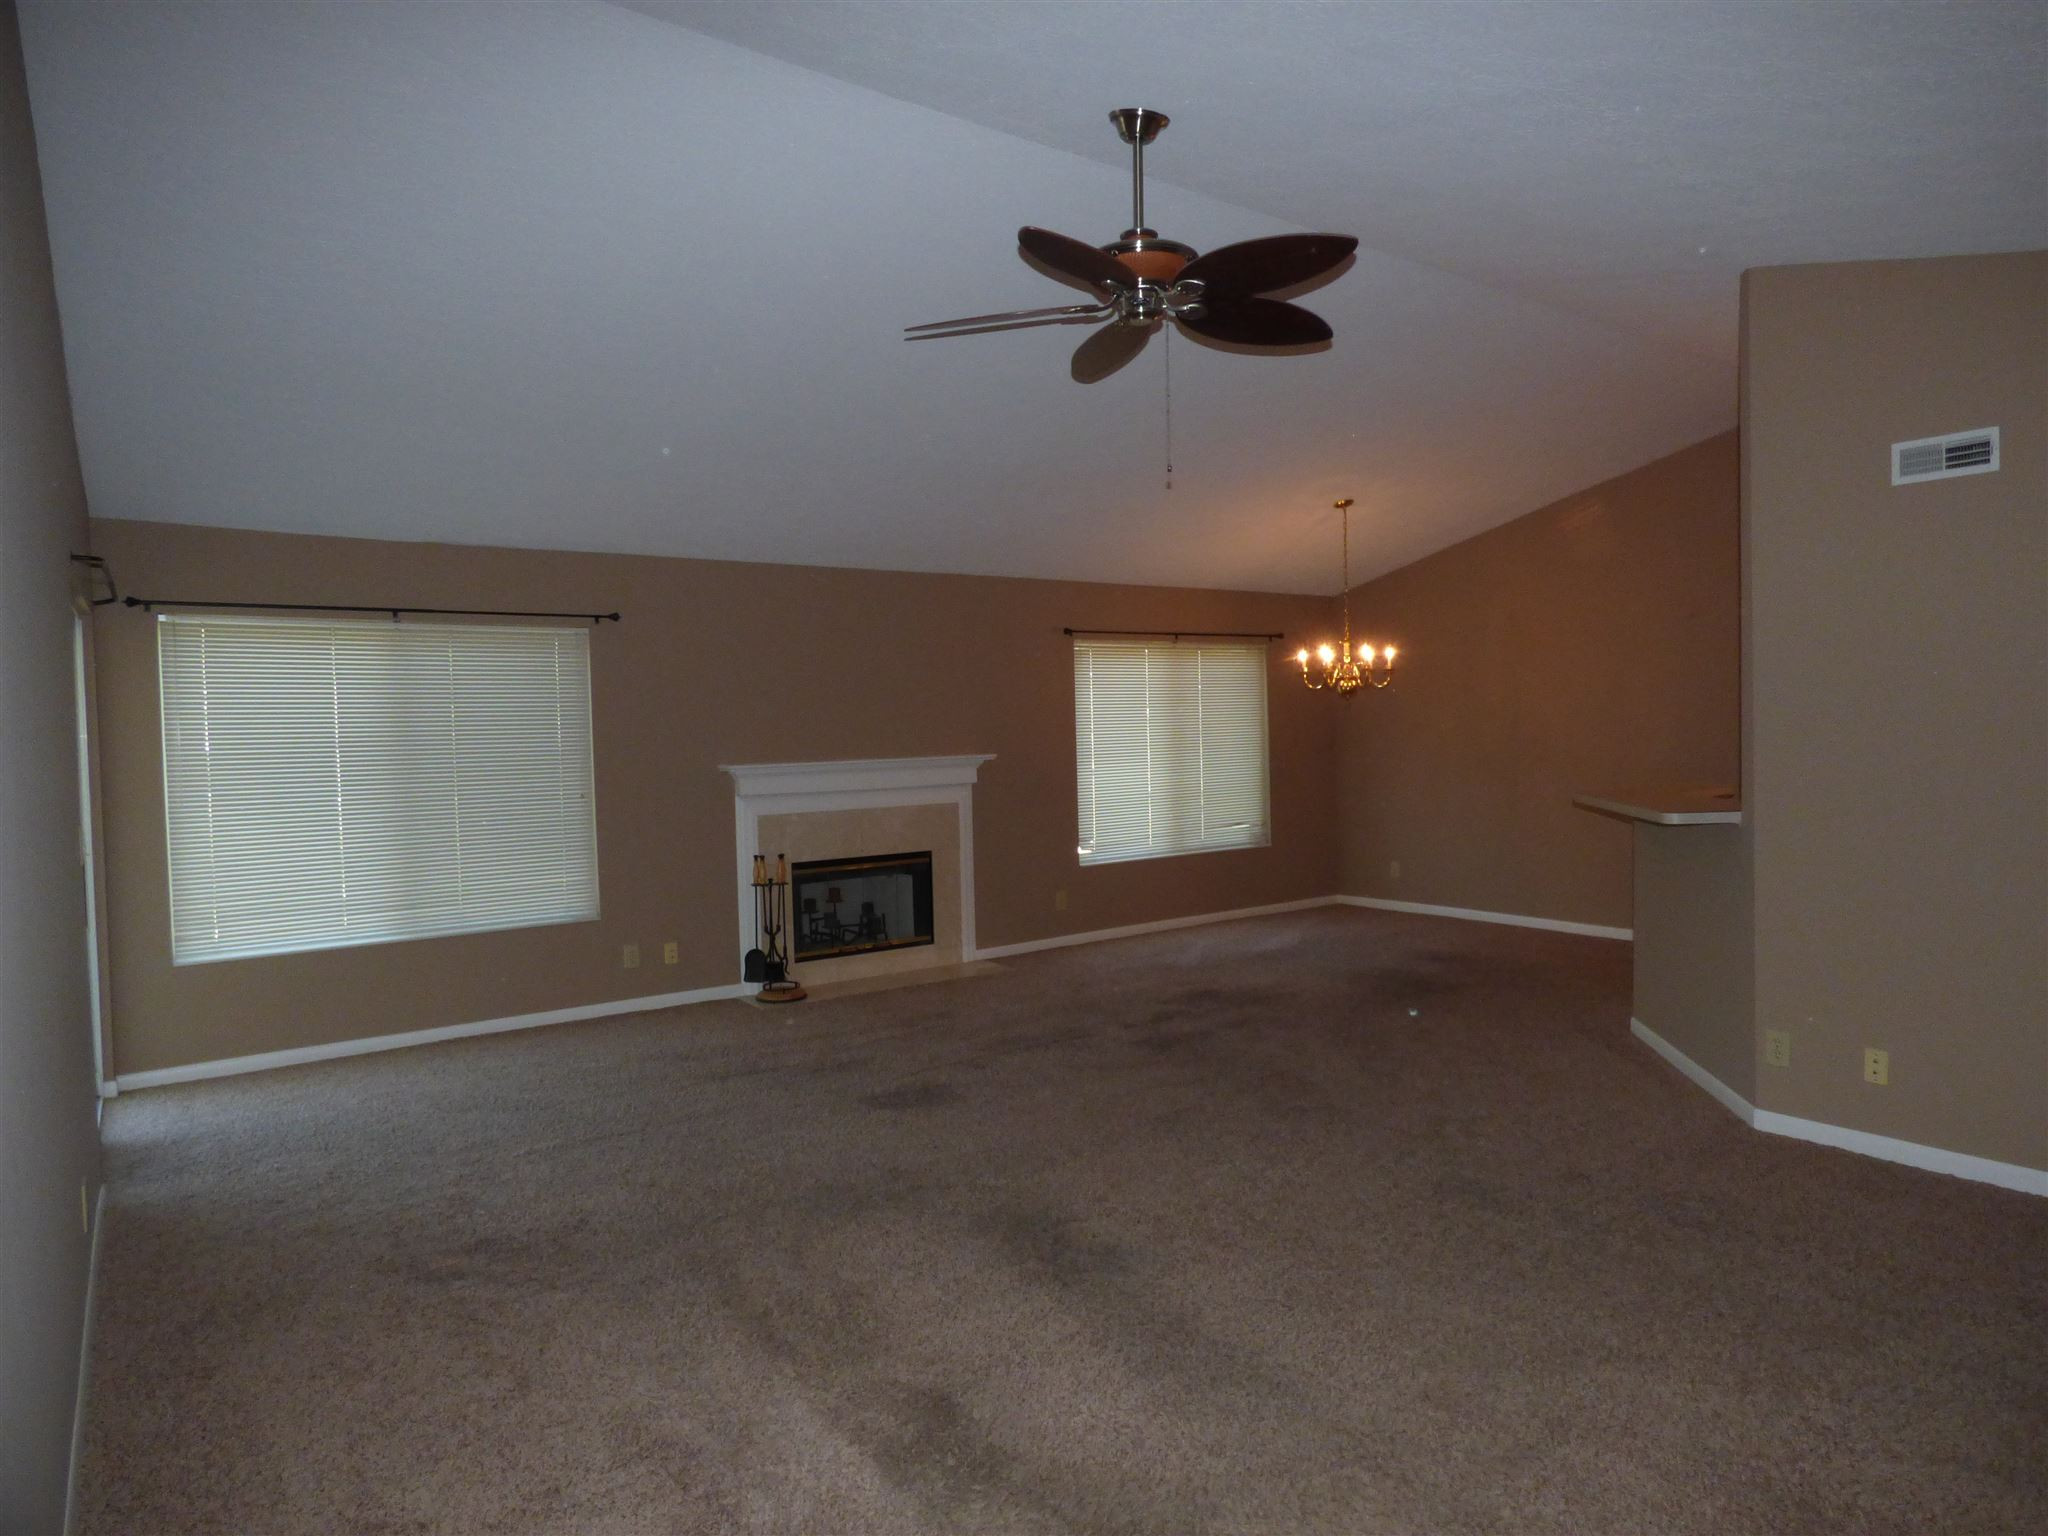 Photo 2 for 2126 Carrick #301 Crescent Springs, KY 41017